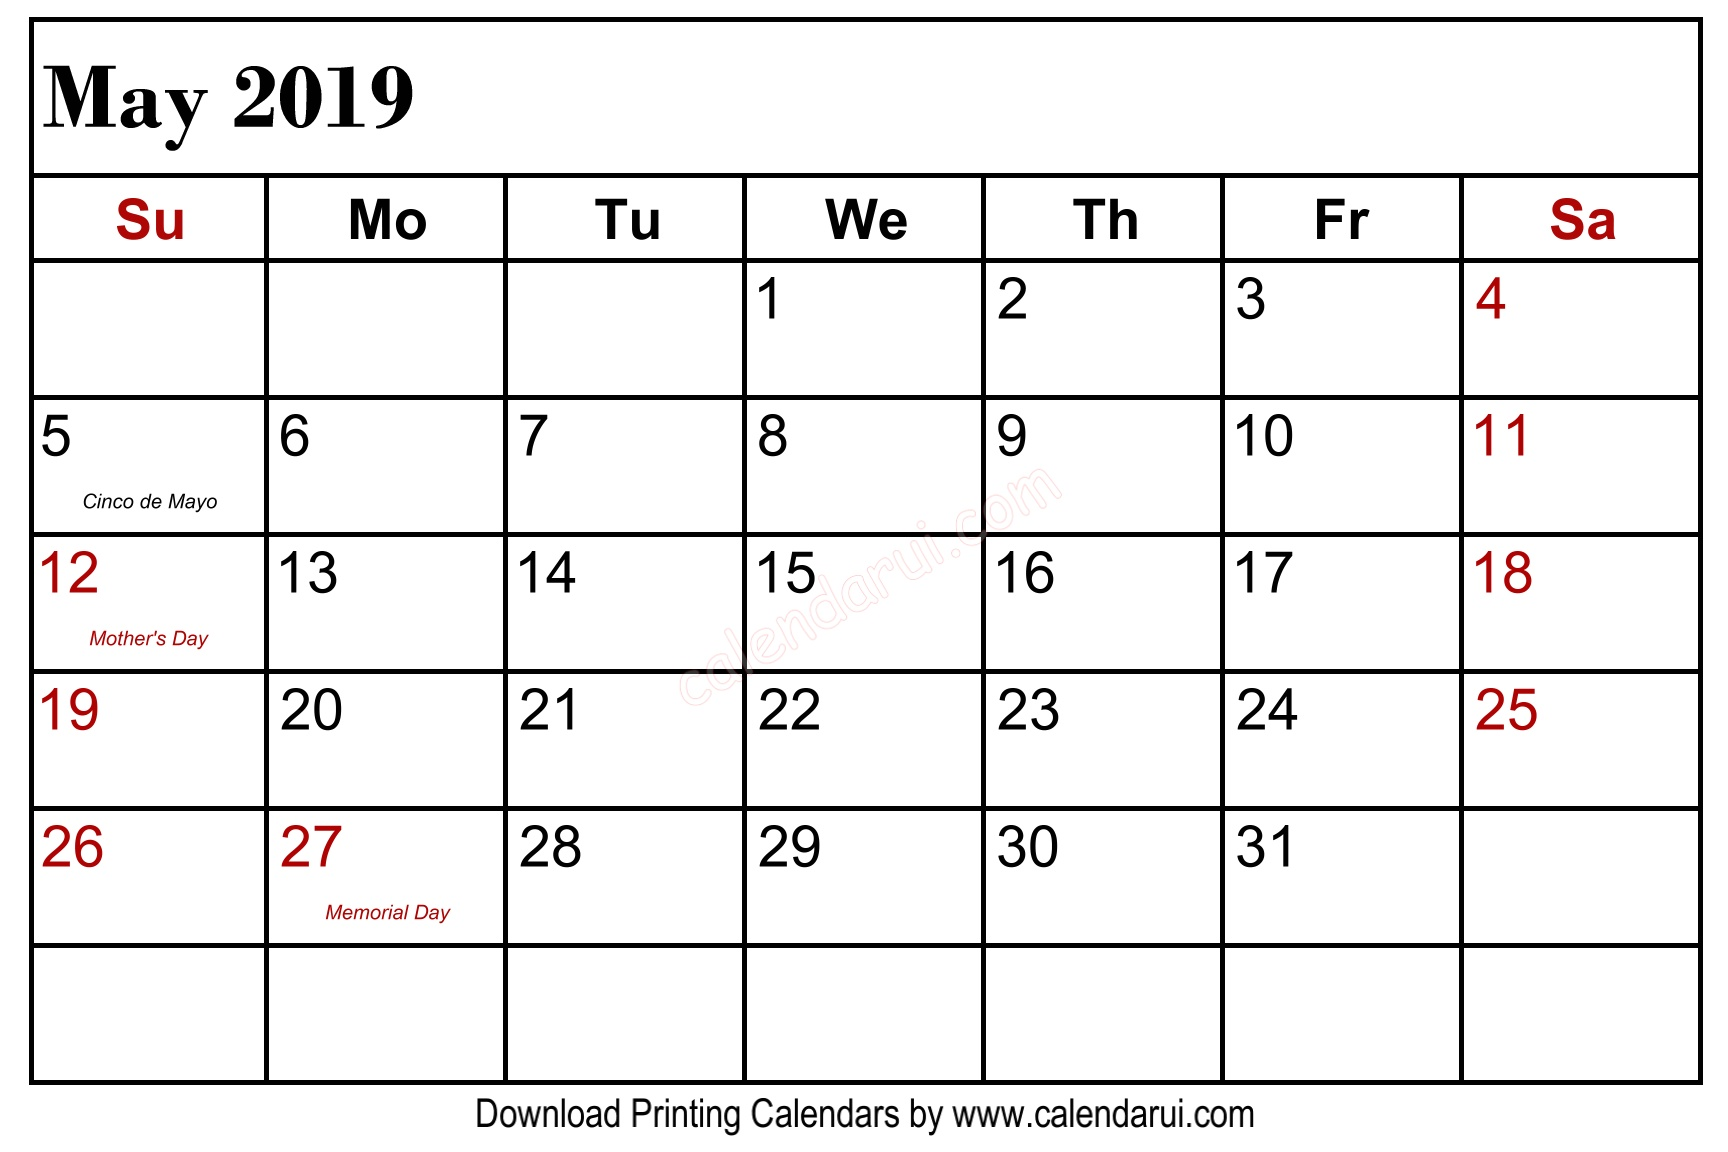 May 2019 Calendar With Holidays Canada